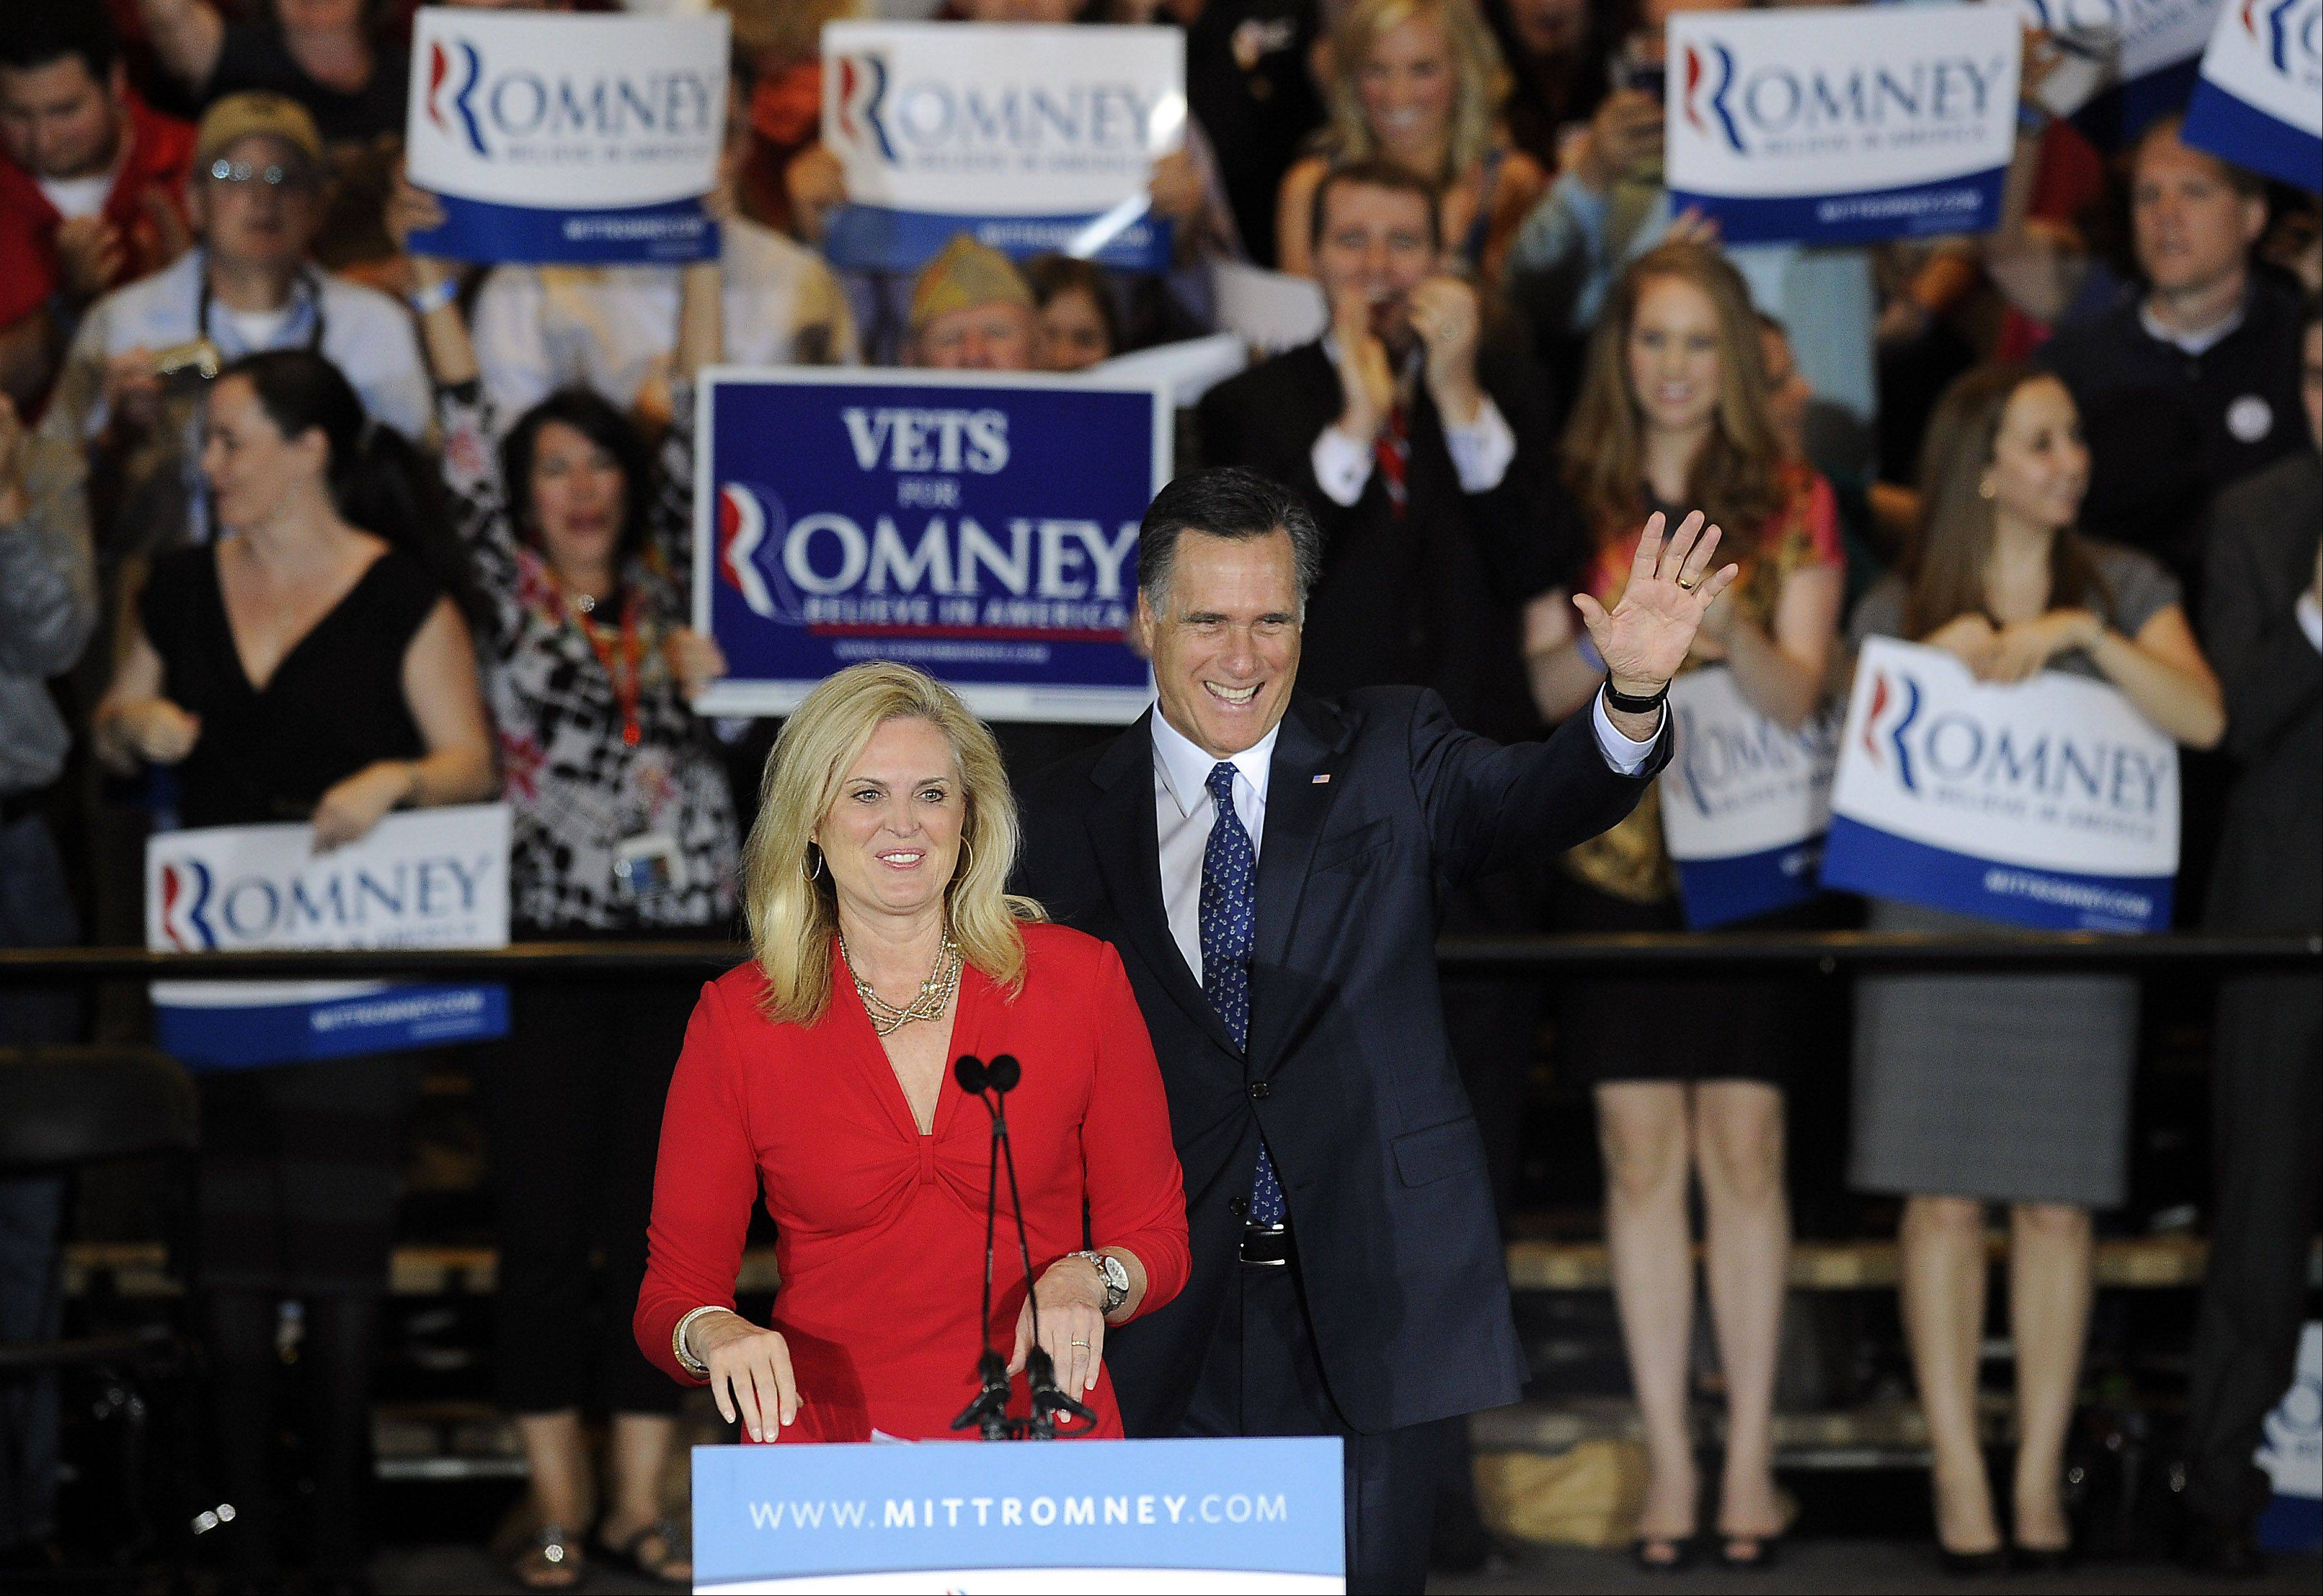 Mitt and Ann Romney in Schaumburg celebrating his win in the Illinois Primary.